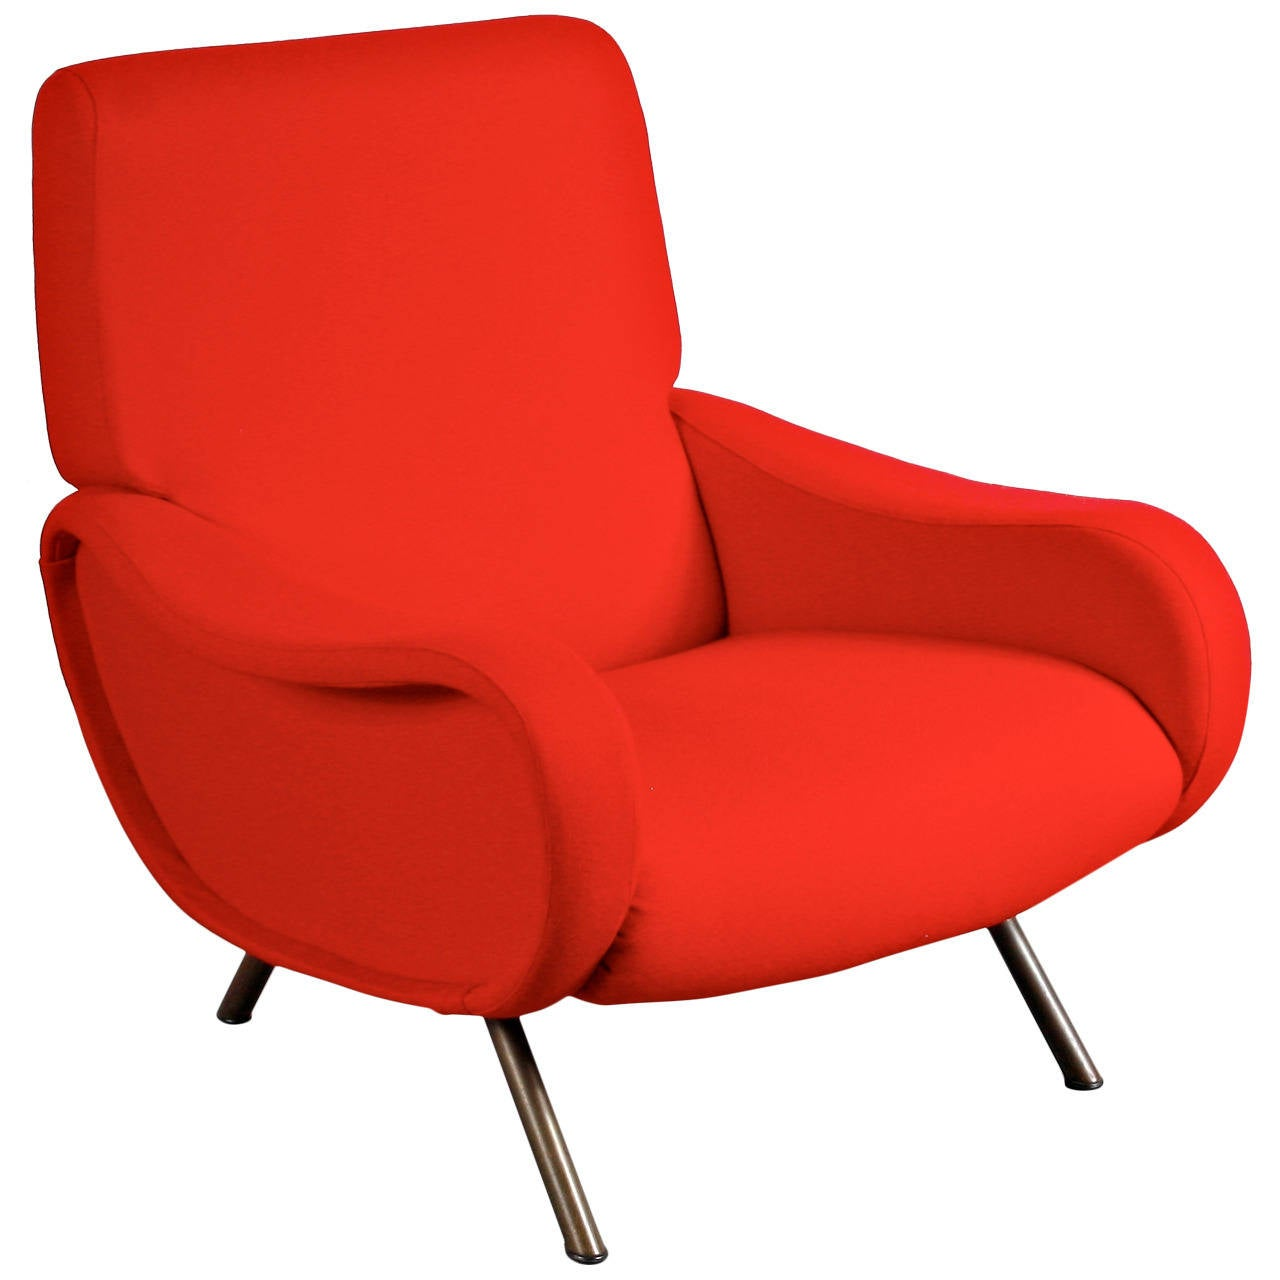 "First Edition ""Lady"" Easy Chair by Marco Zanuso for Arflex, Italy, circa 1950"